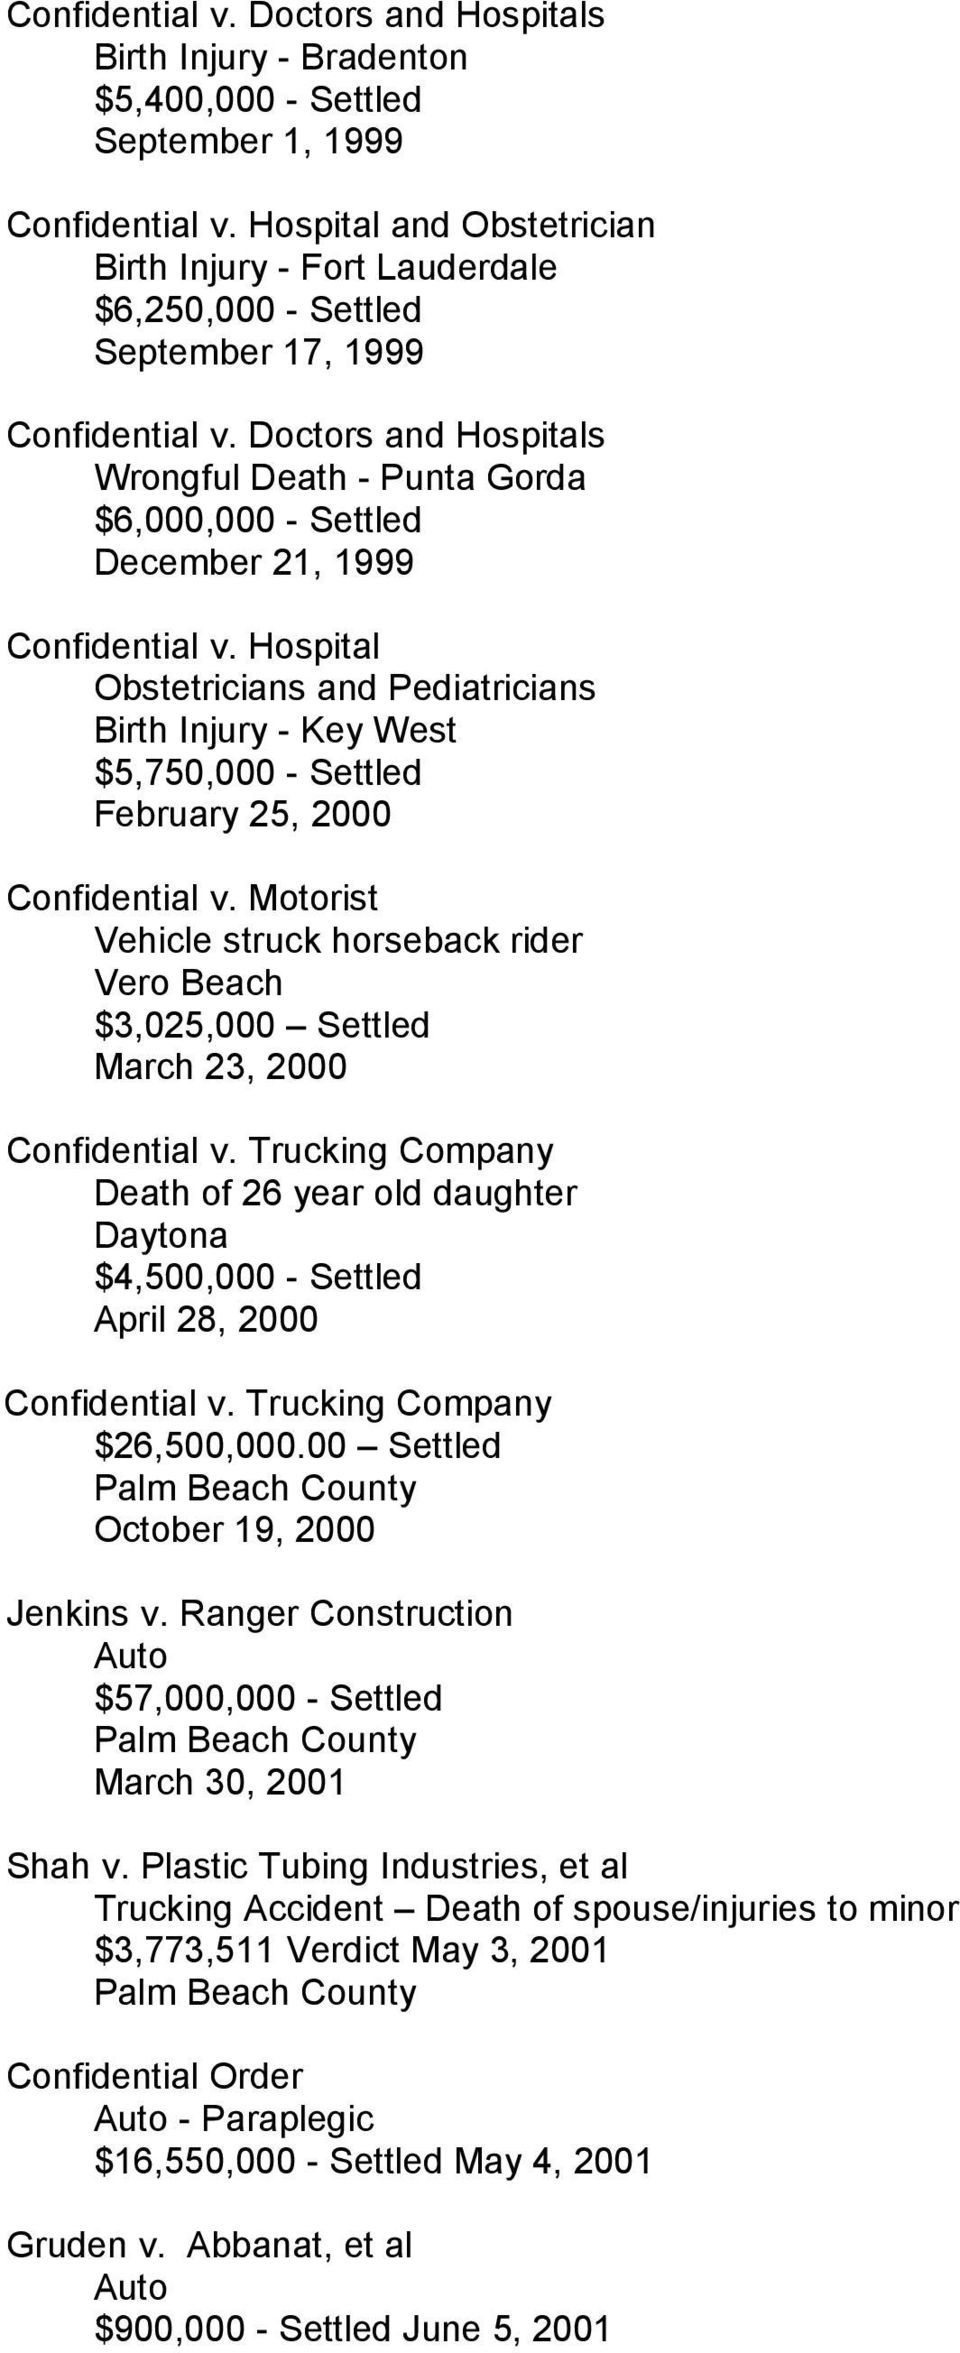 Motorist Vehicle struck horseback rider Vero Beach $3,025,000 Settled March 23, 2000 v. Trucking Company Death of 26 year old daughter Daytona $4,500,000 - Settled April 28, 2000 v.